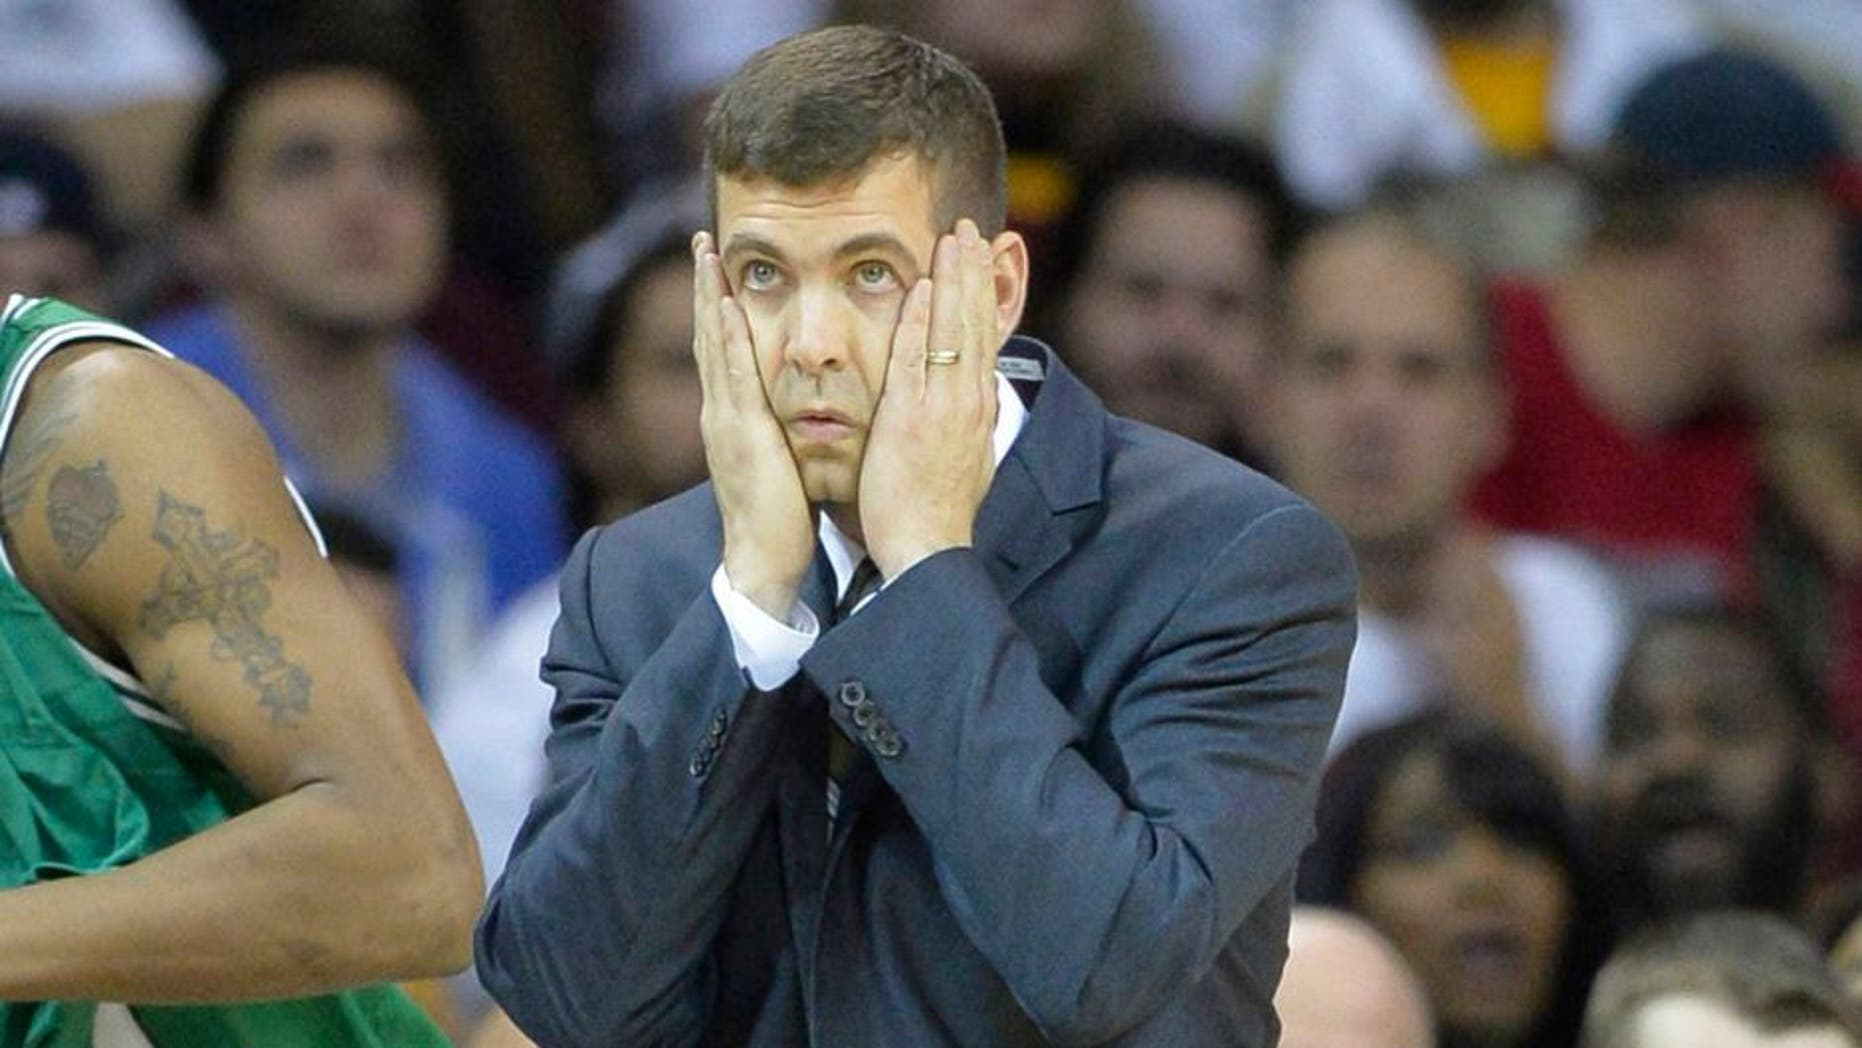 Apr 21, 2015; Cleveland, OH, USA; Boston Celtics head coach Brad Stevens reacts in the fourth quarter against the Cleveland Cavaliers in game two of the first round of the NBA Playoffs at Quicken Loans Arena. Mandatory Credit: David Richard-USA TODAY Sports